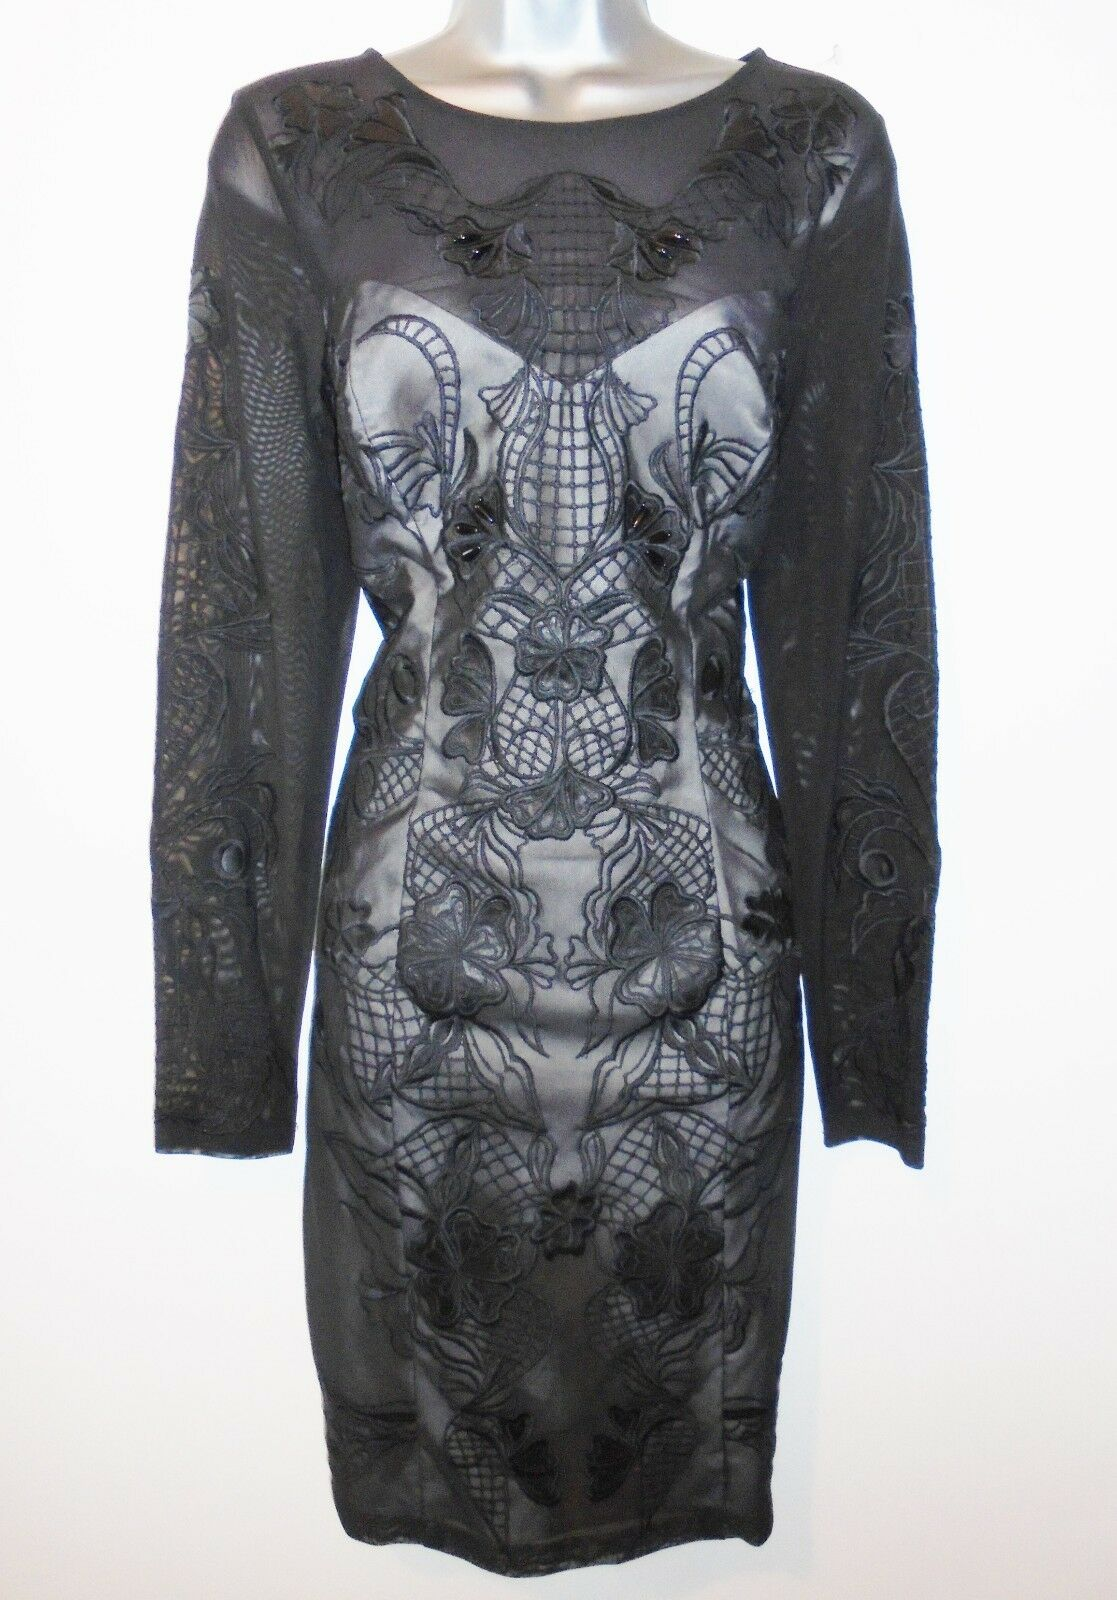 BNWT Lipsy VIP Embroidered Long Sleeve Bodycon Evening Occasion Dress NEW